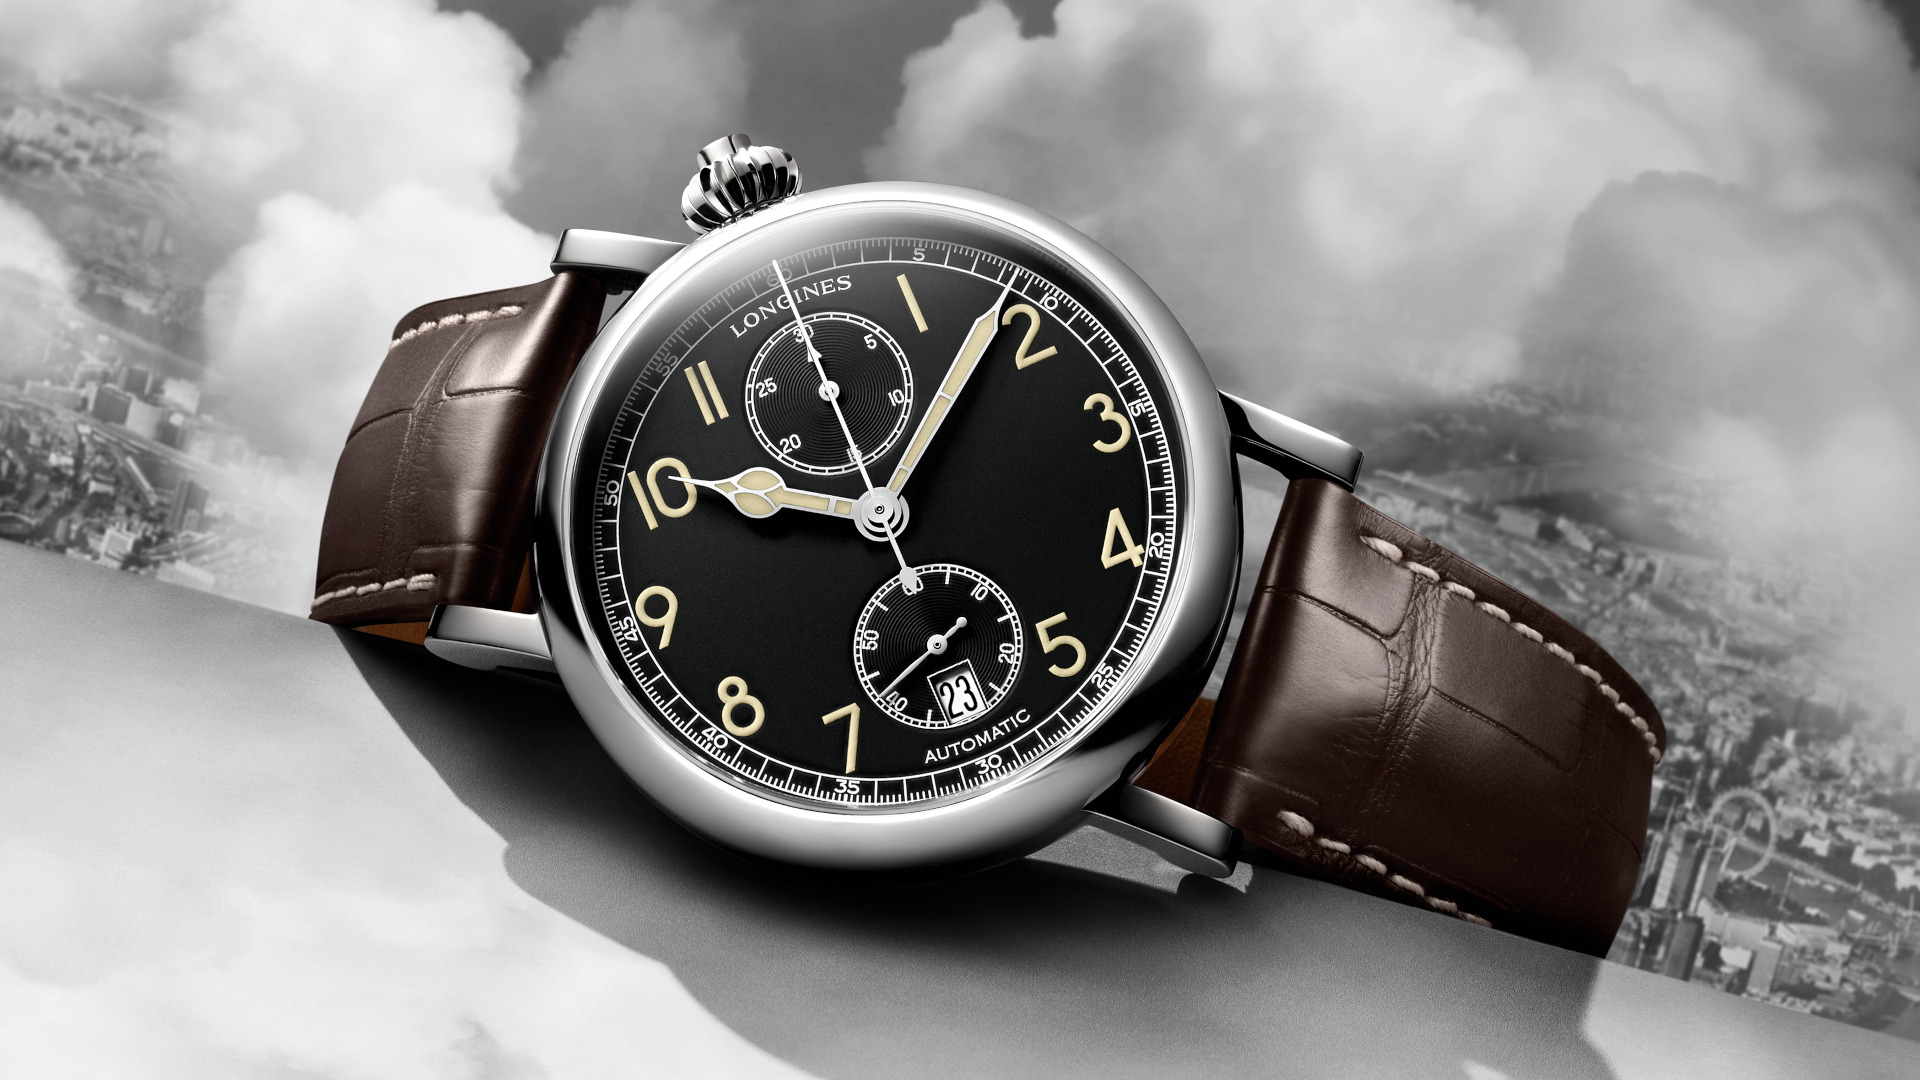 Flying back to the past with the Longines Avigation Watch A-7 1935